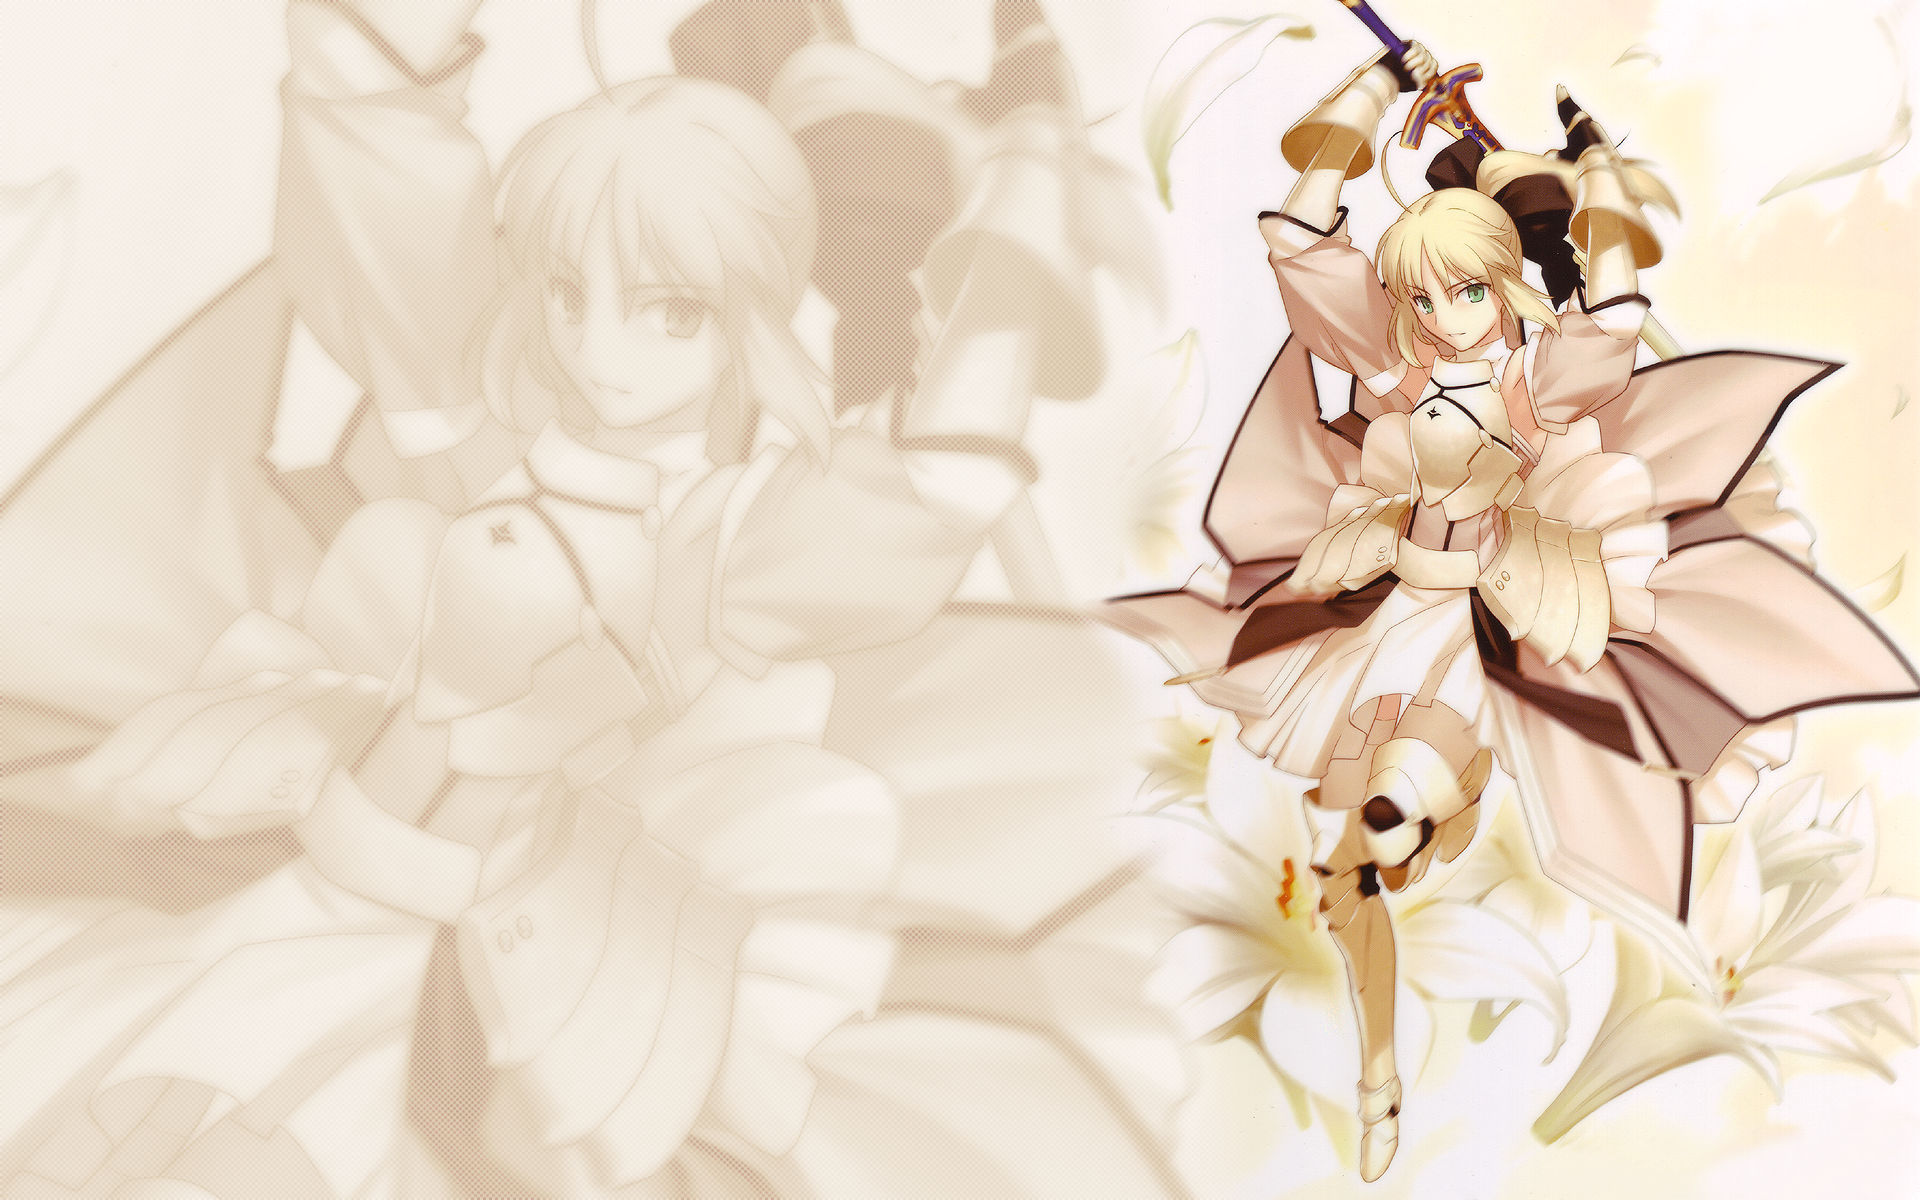 Anime - Fate/Stay Night  Saber Lily Wallpaper